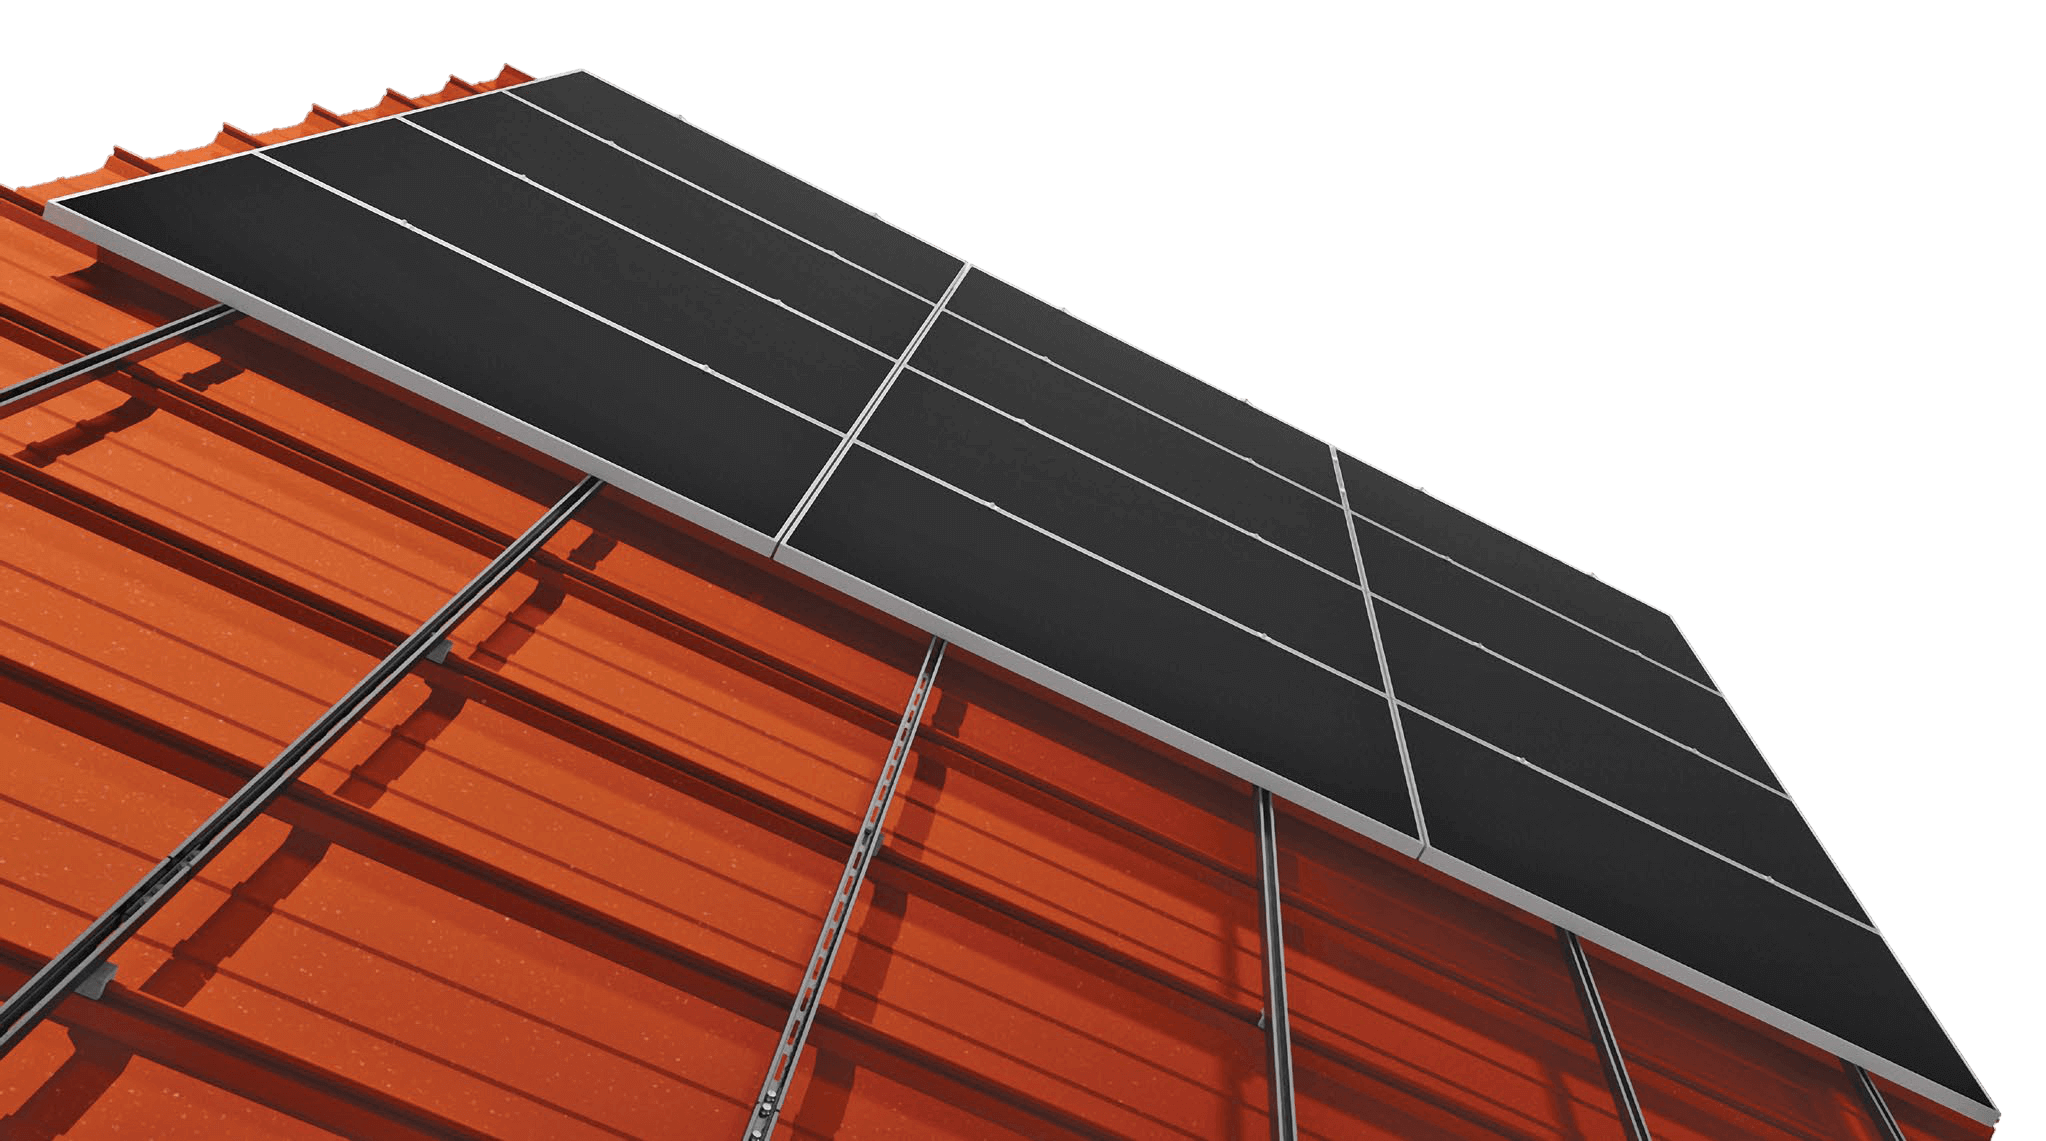 secure-top-solar-panels-menu